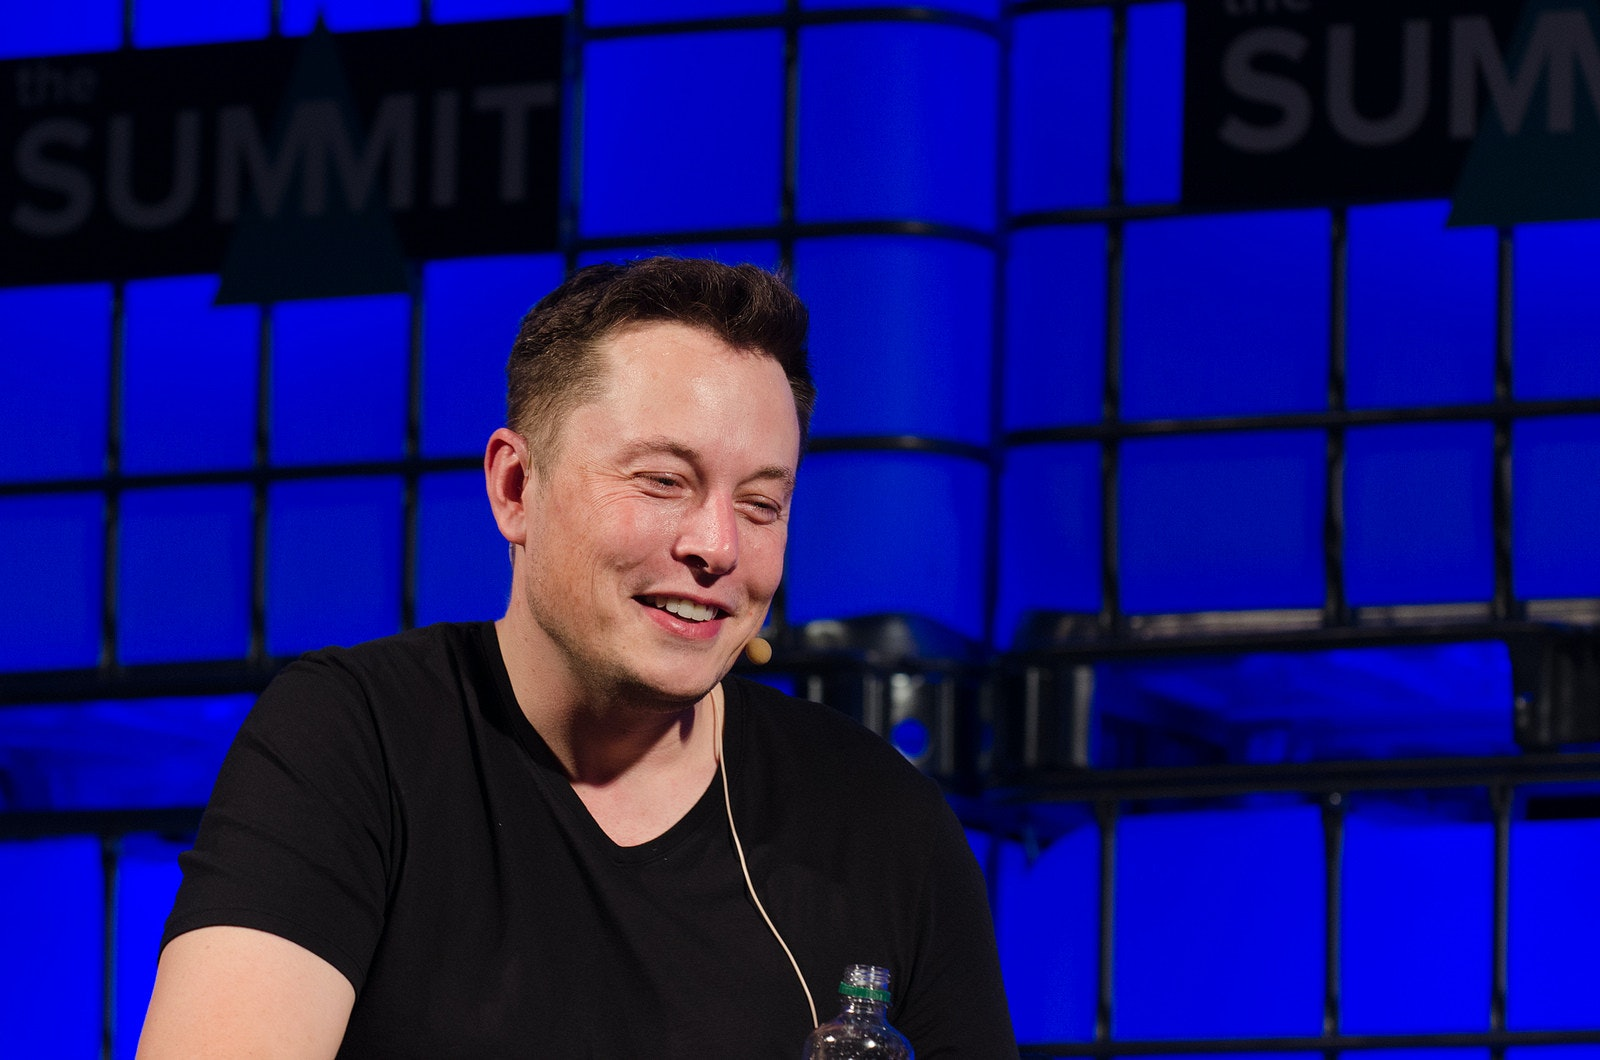 Elon Musk, Tesla, Inc., , Tesla Model 3, Flickr, Web Summit, SpaceX, , Entrepreneur, Chief Executive, elon musk flickr, Blue, Music artist, Fun, Performance, Event, Electric blue, Singer, Television presenter